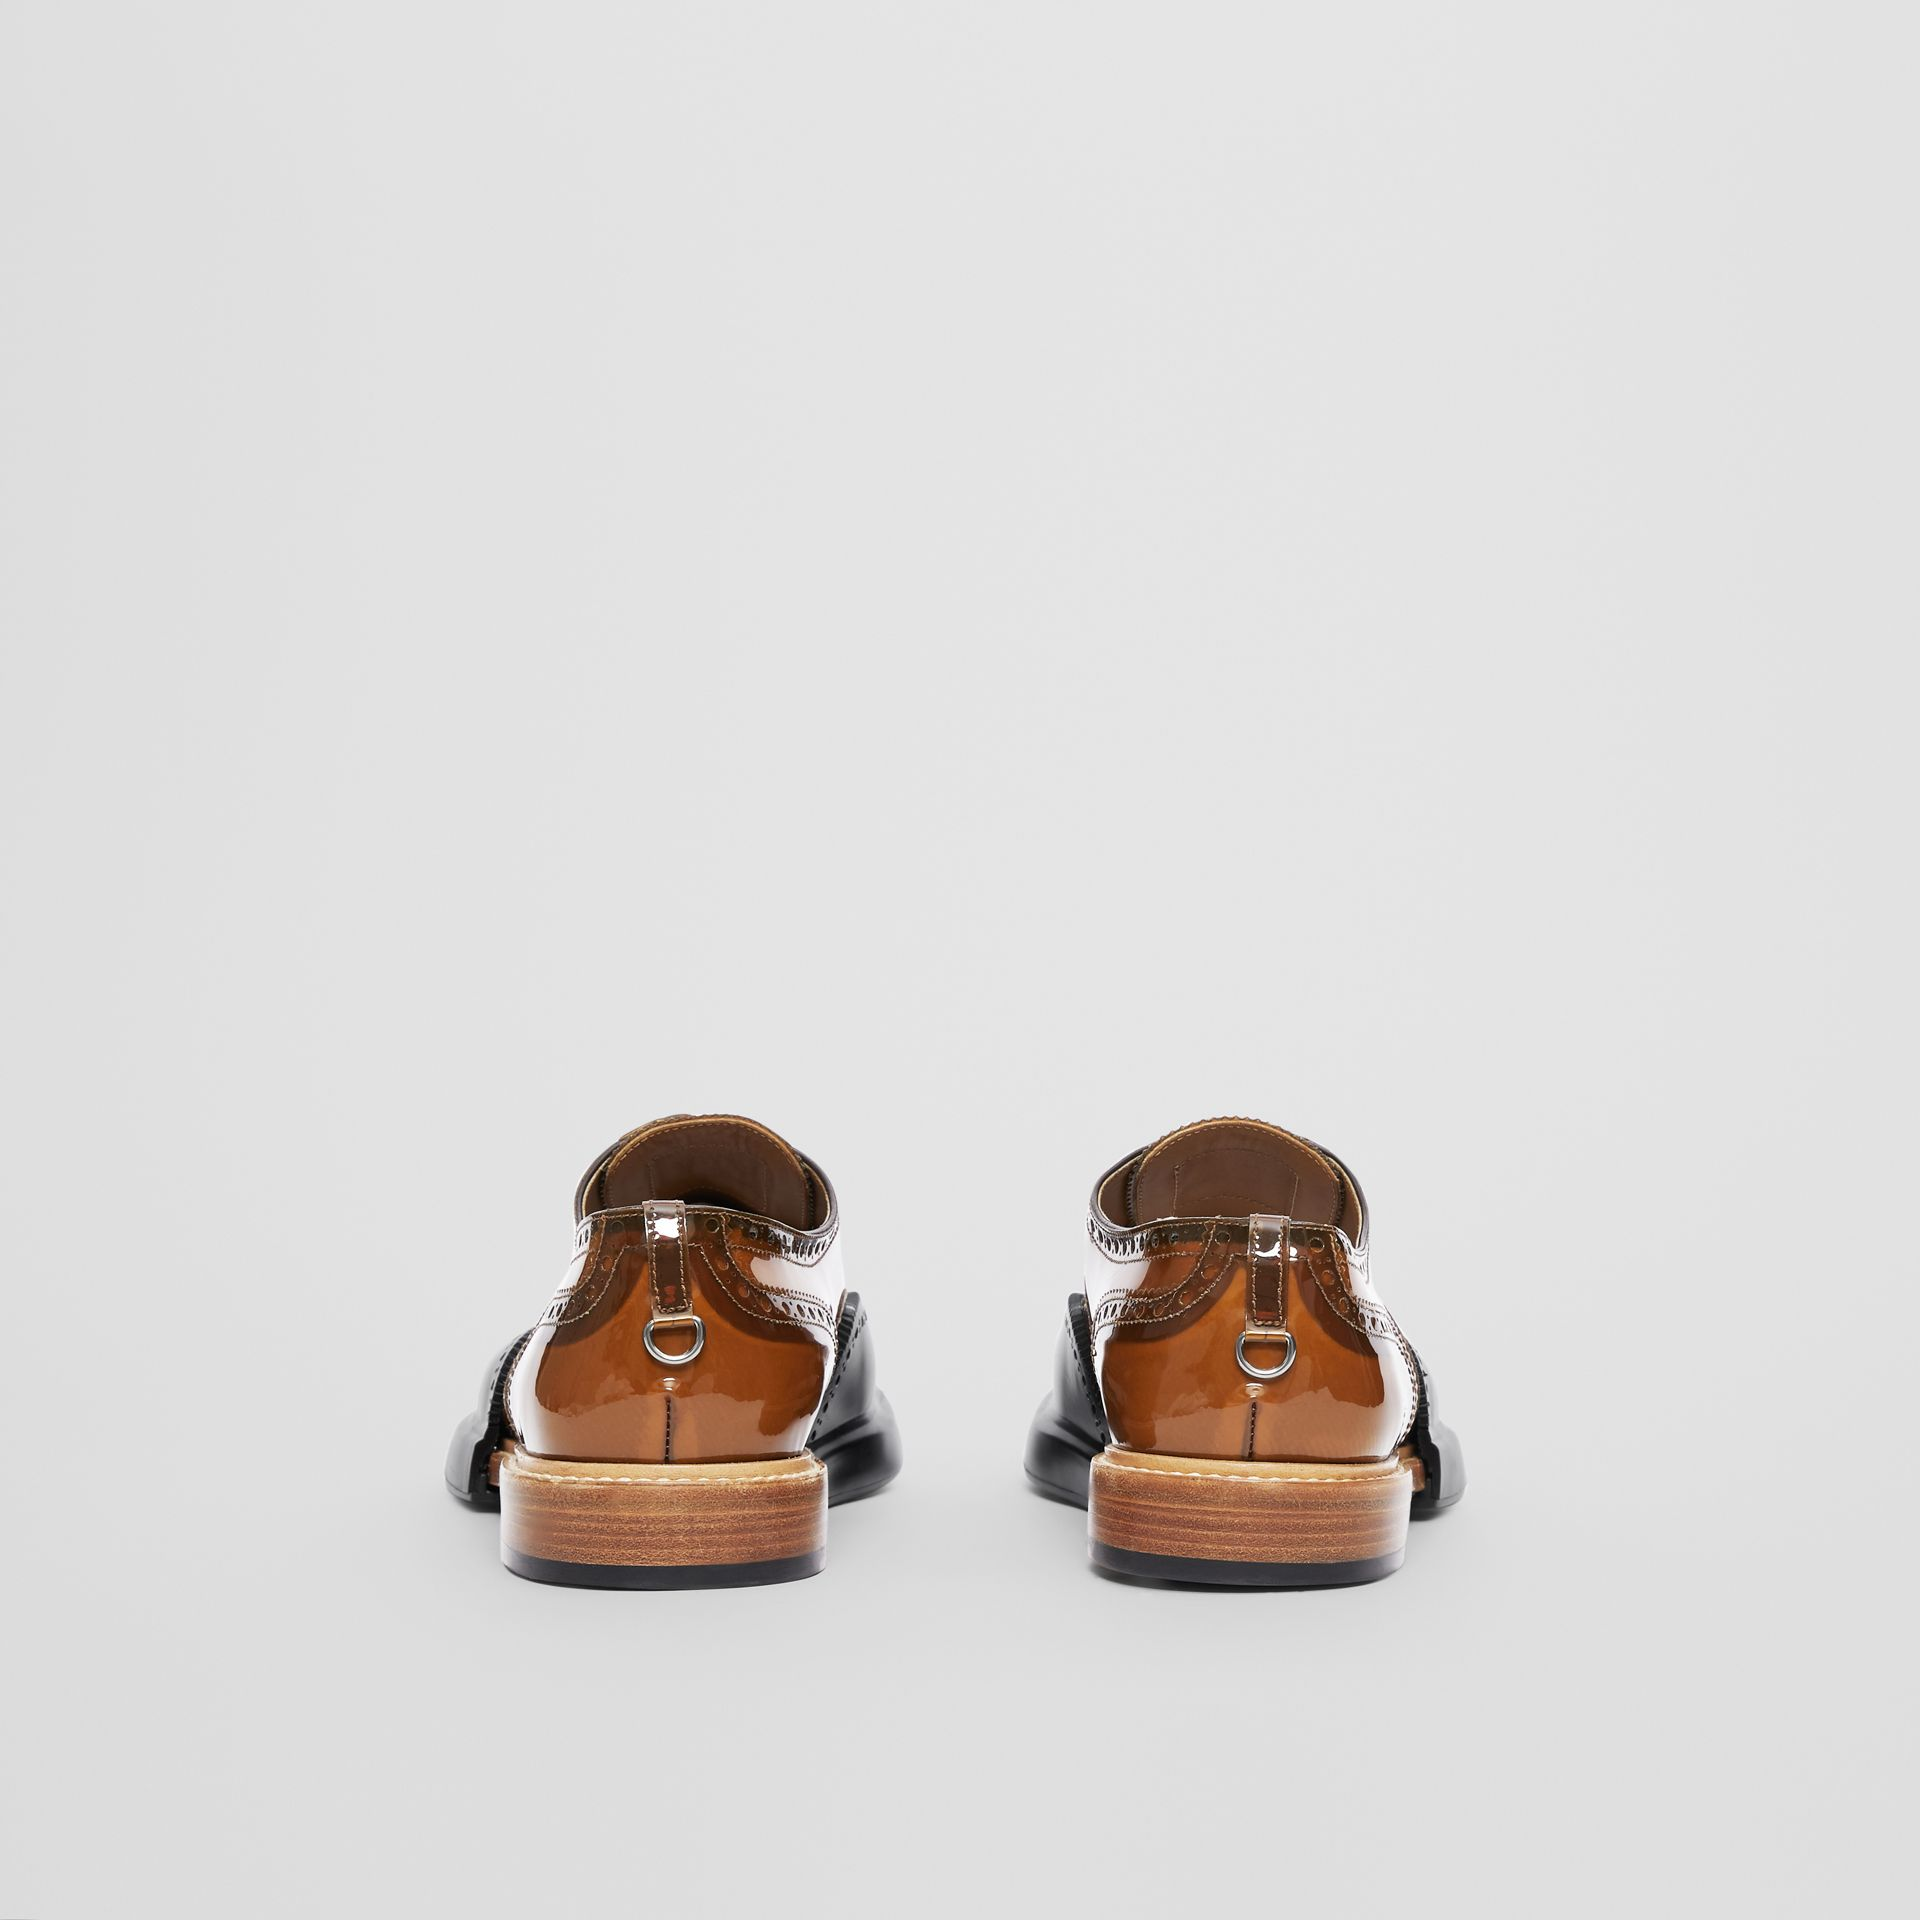 Toe Cap Detail Vinyl and Leather Oxford Brogues in Brown/black - Men | Burberry - gallery image 3